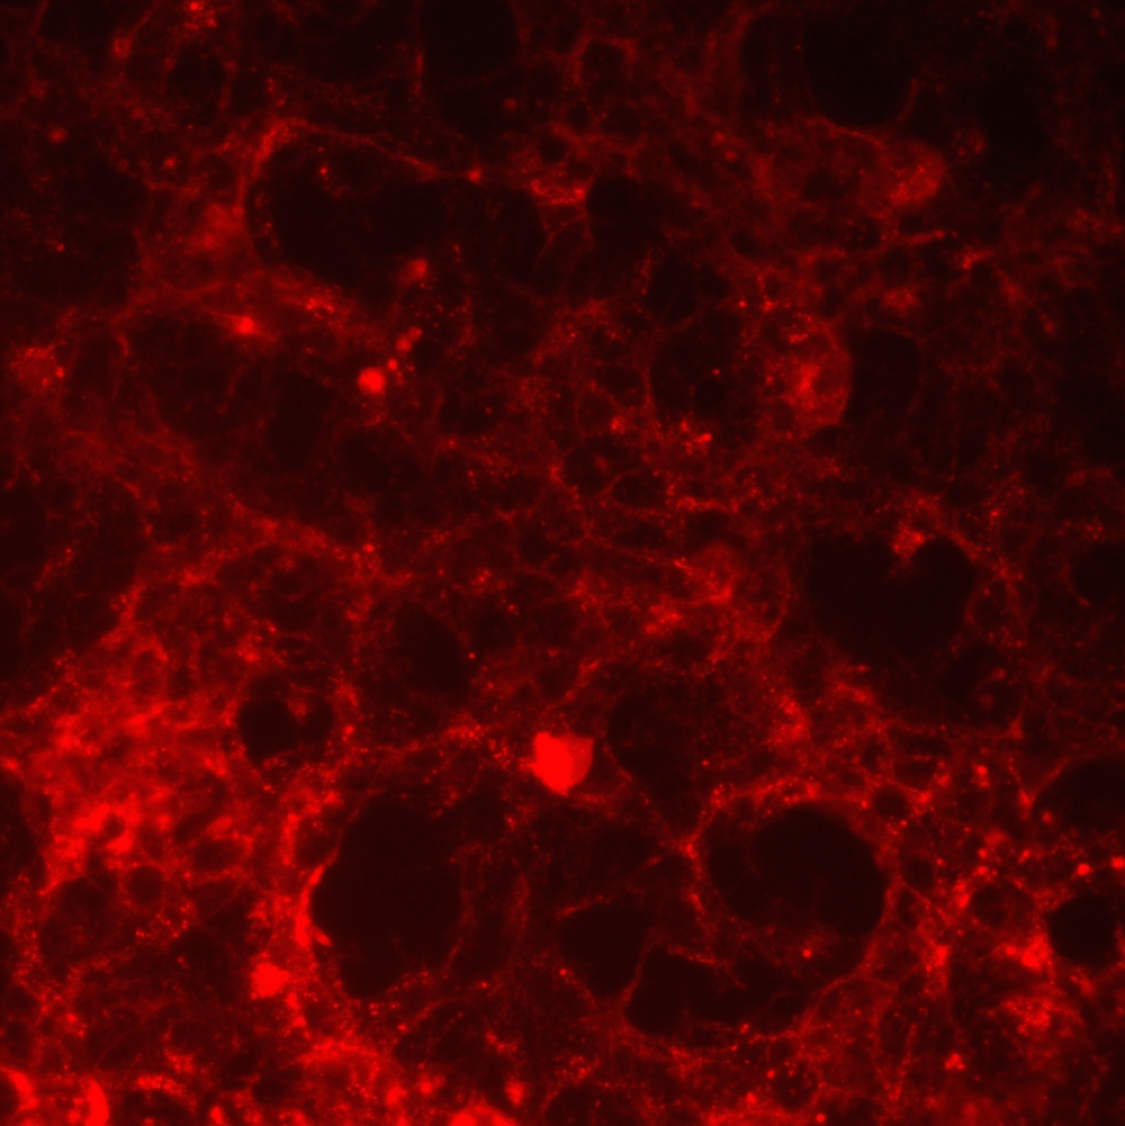 Immunocytochemistry: HEK-293 cells were transfected with the p75 neurotrophin receptor and were labeled with Cy3 labeled 192-IgG (20 ug/ul).  Analysis performed on a Leica DMIL Fluorescent Microscope.  Image was captured at 20X magnification using SPOT imaging software.